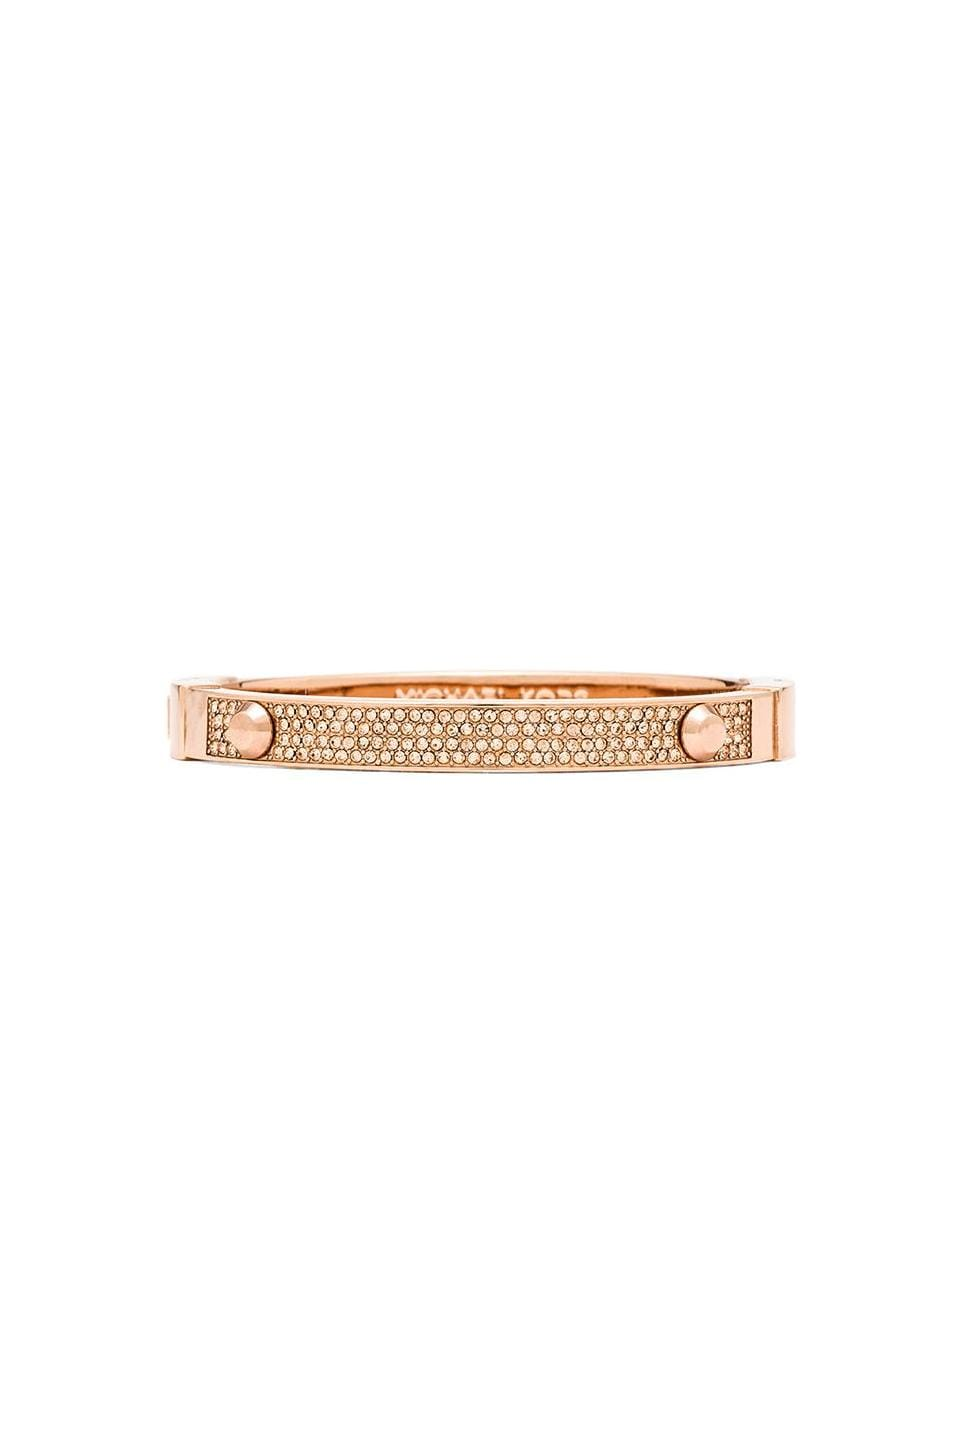 Michael Kors Crystal Bangle in Rose Gold